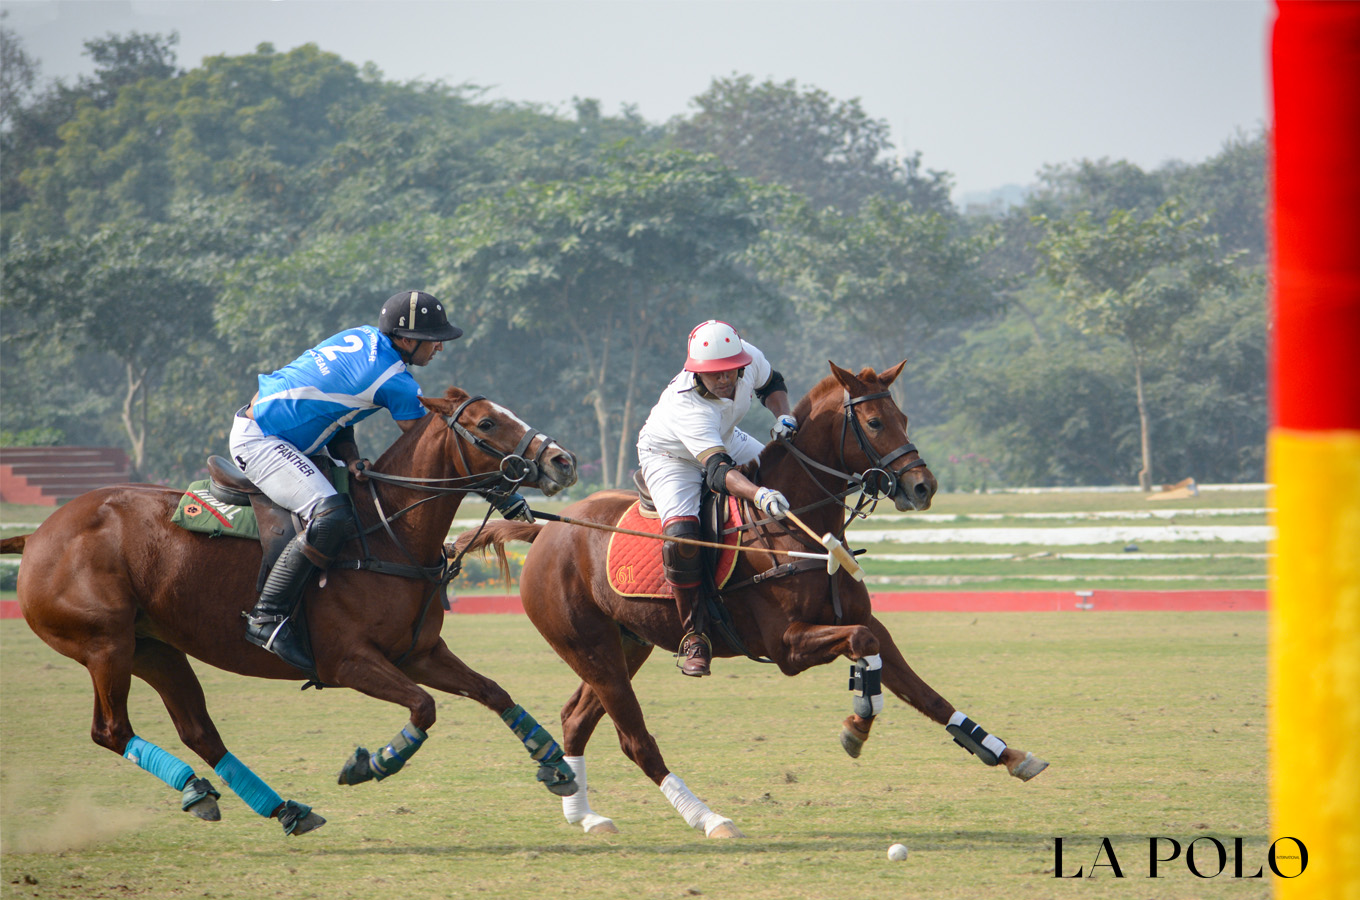 The Day Of IPG Col Girdhari Singh Memorial Cup